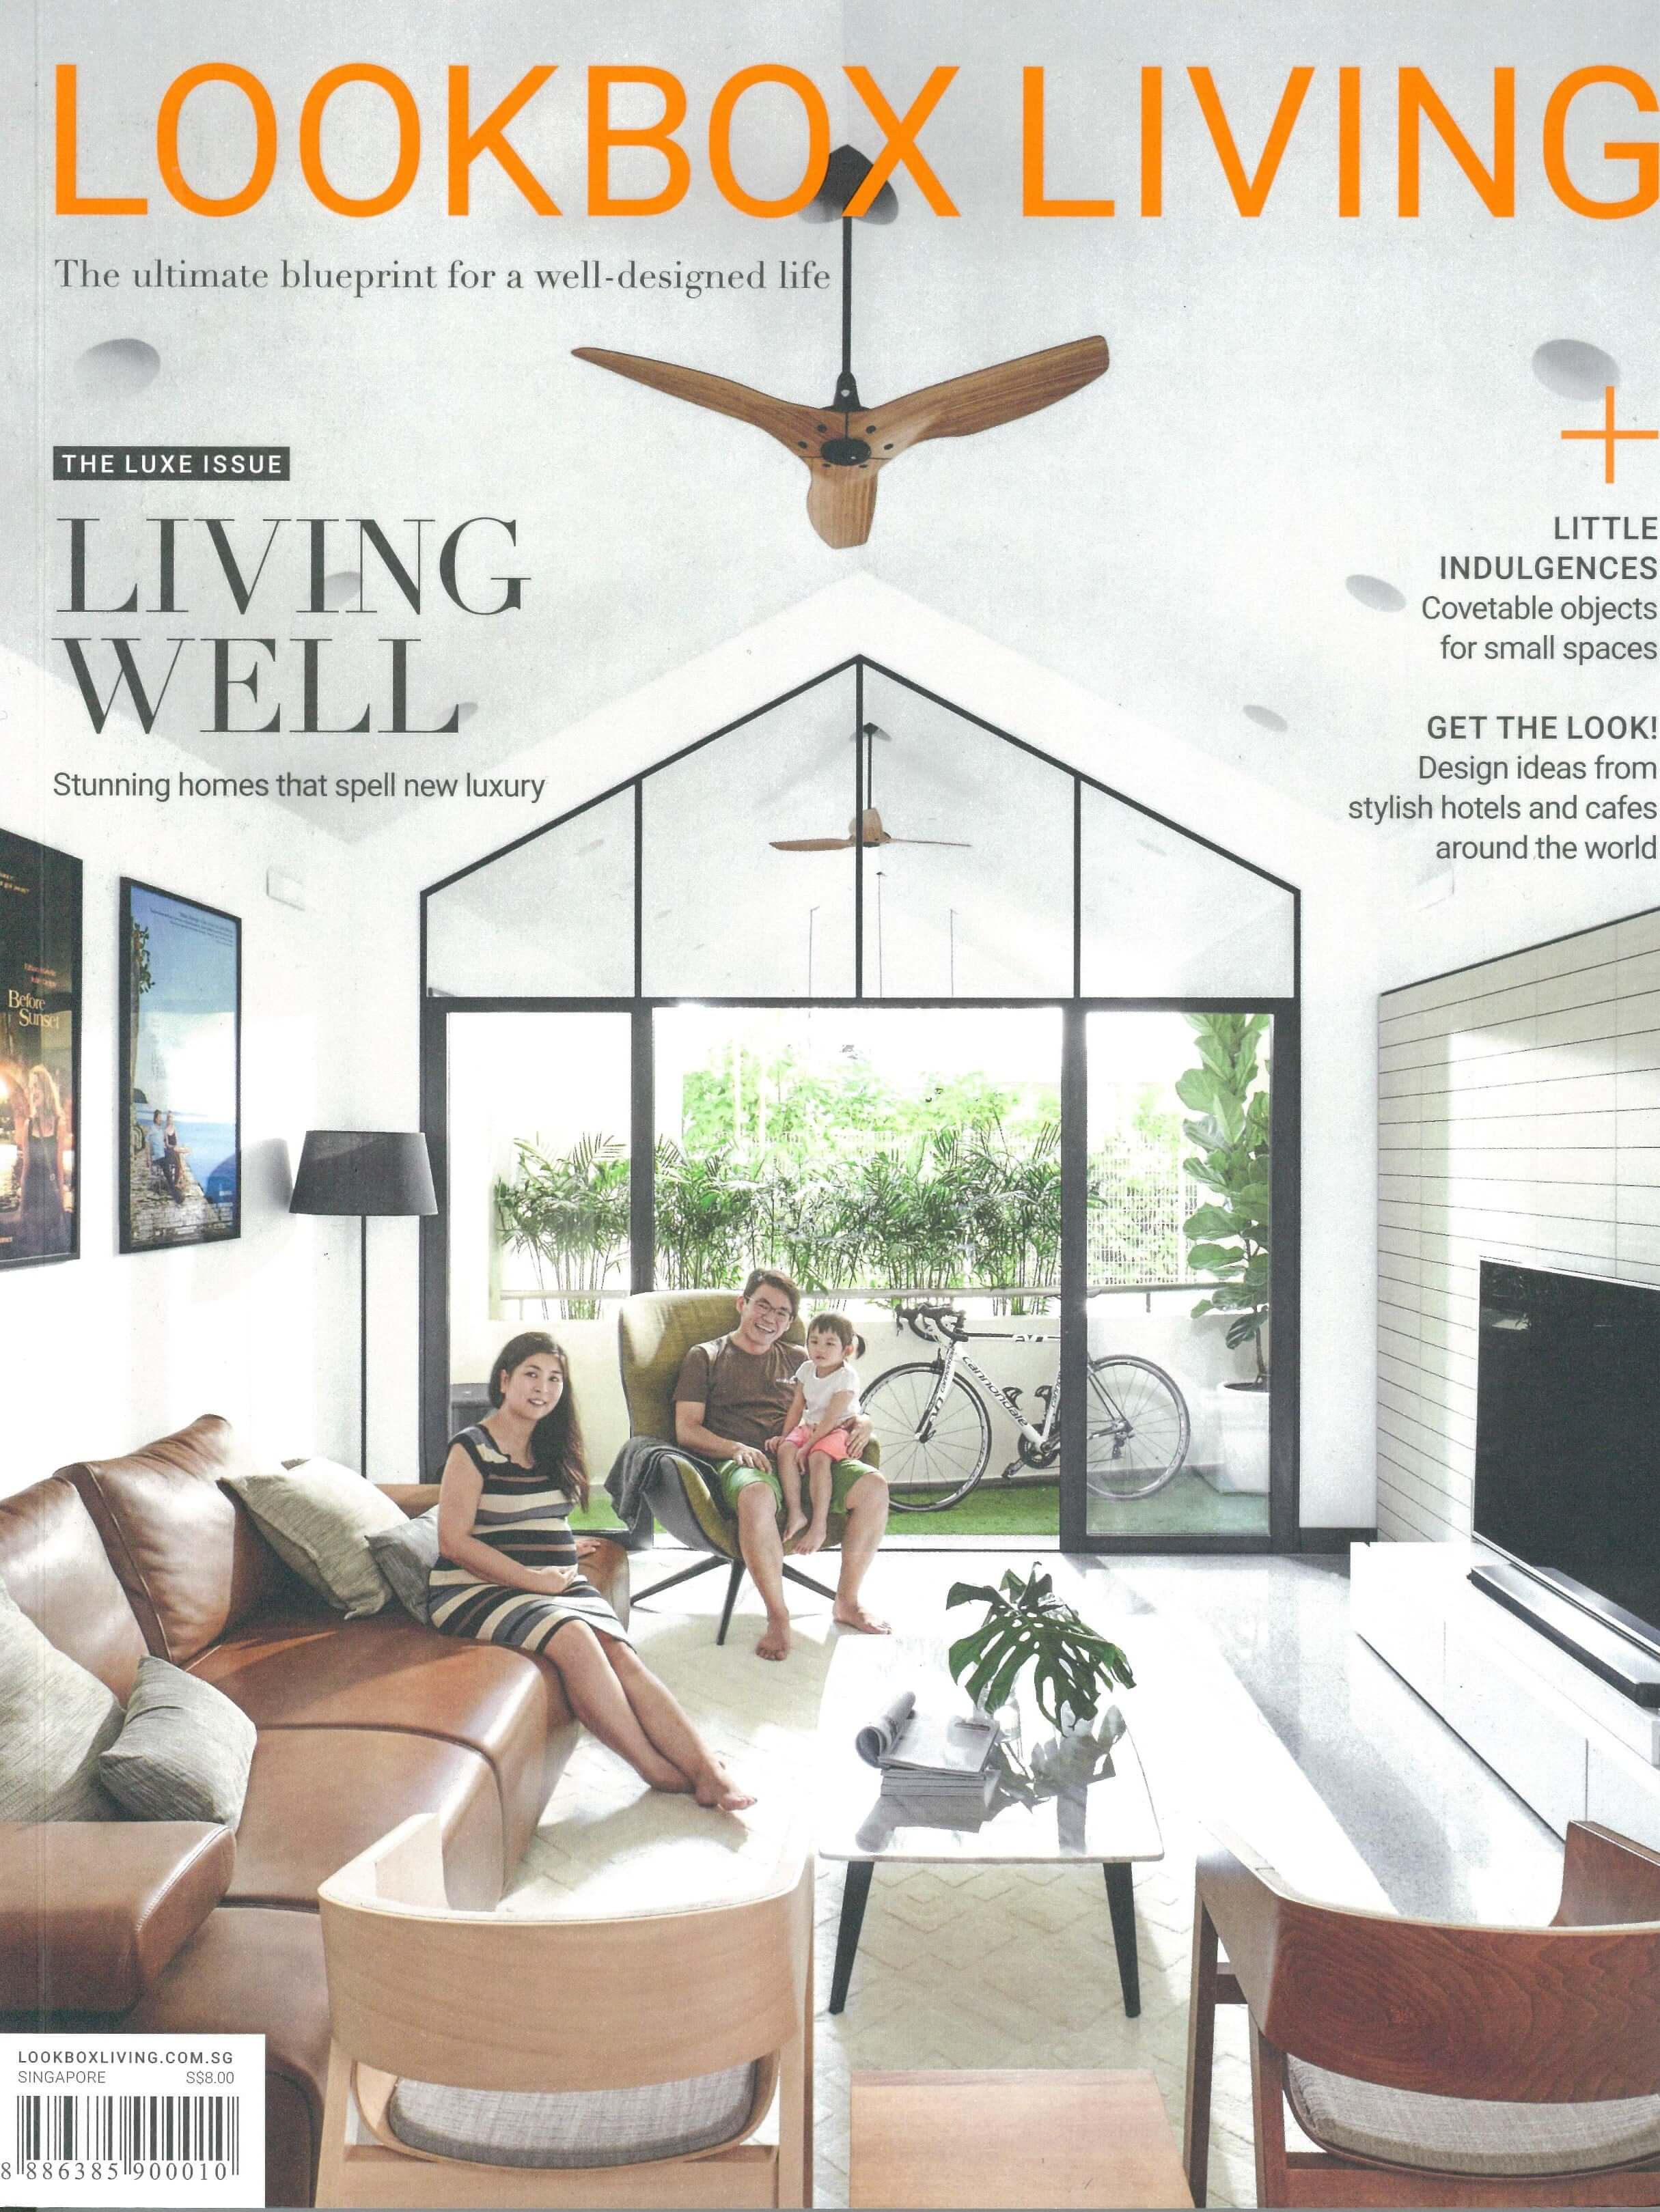 Dwell Acacia in Lookbox Living Magazine #20 September 2017